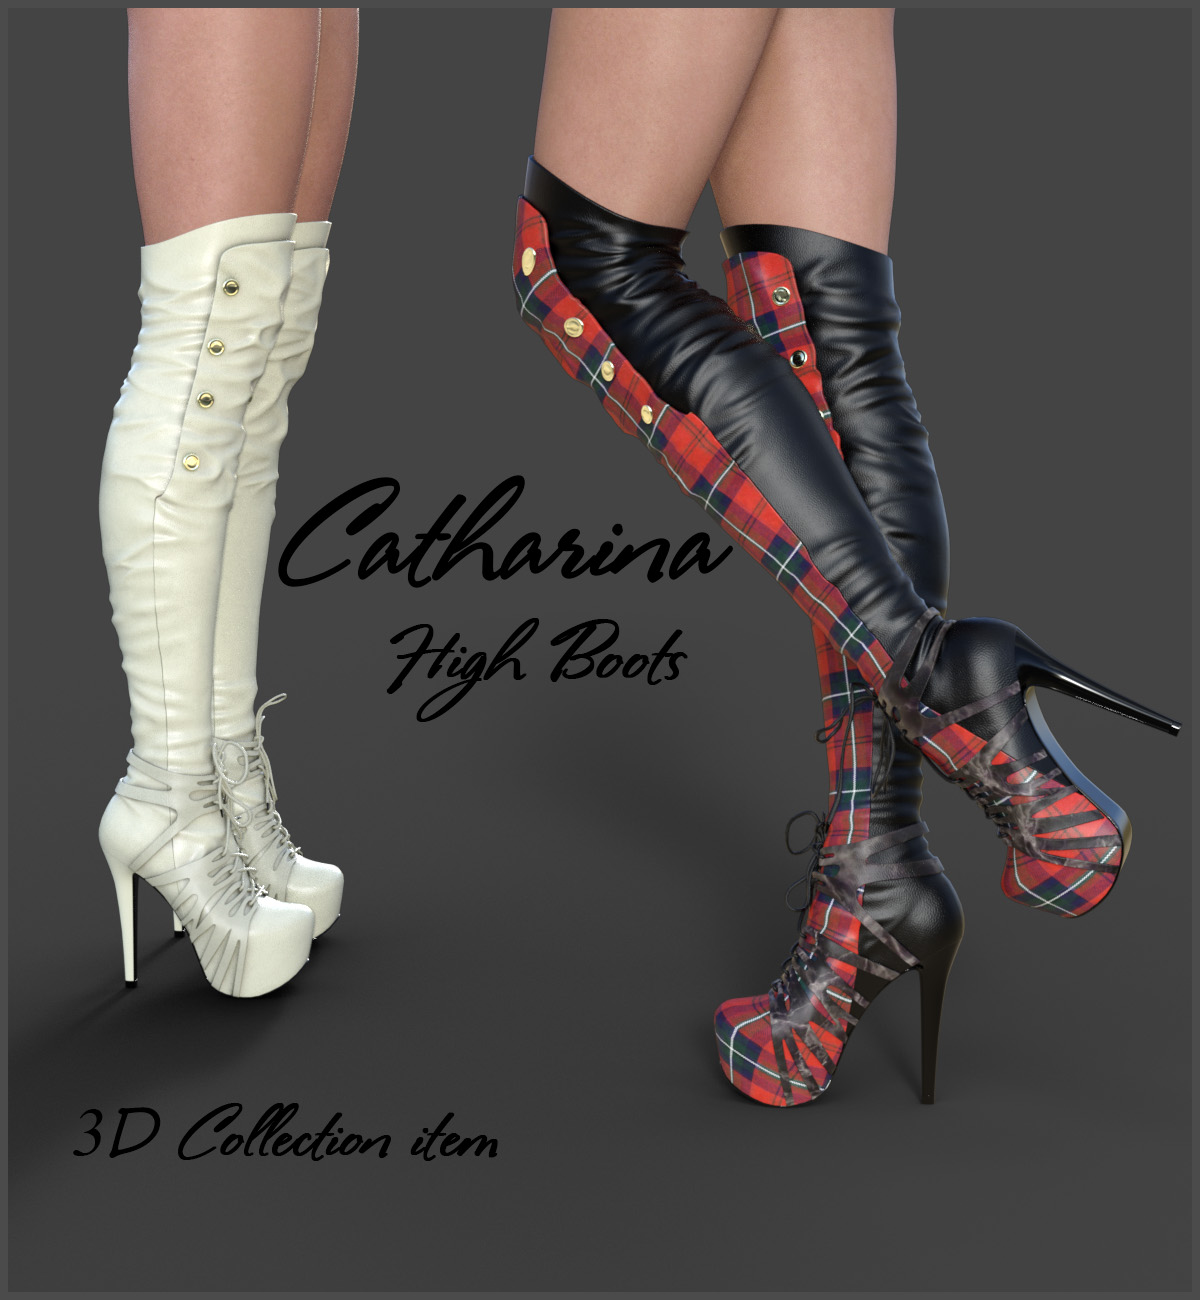 Catharina High Boots for Genesis 3 Females by Arryn